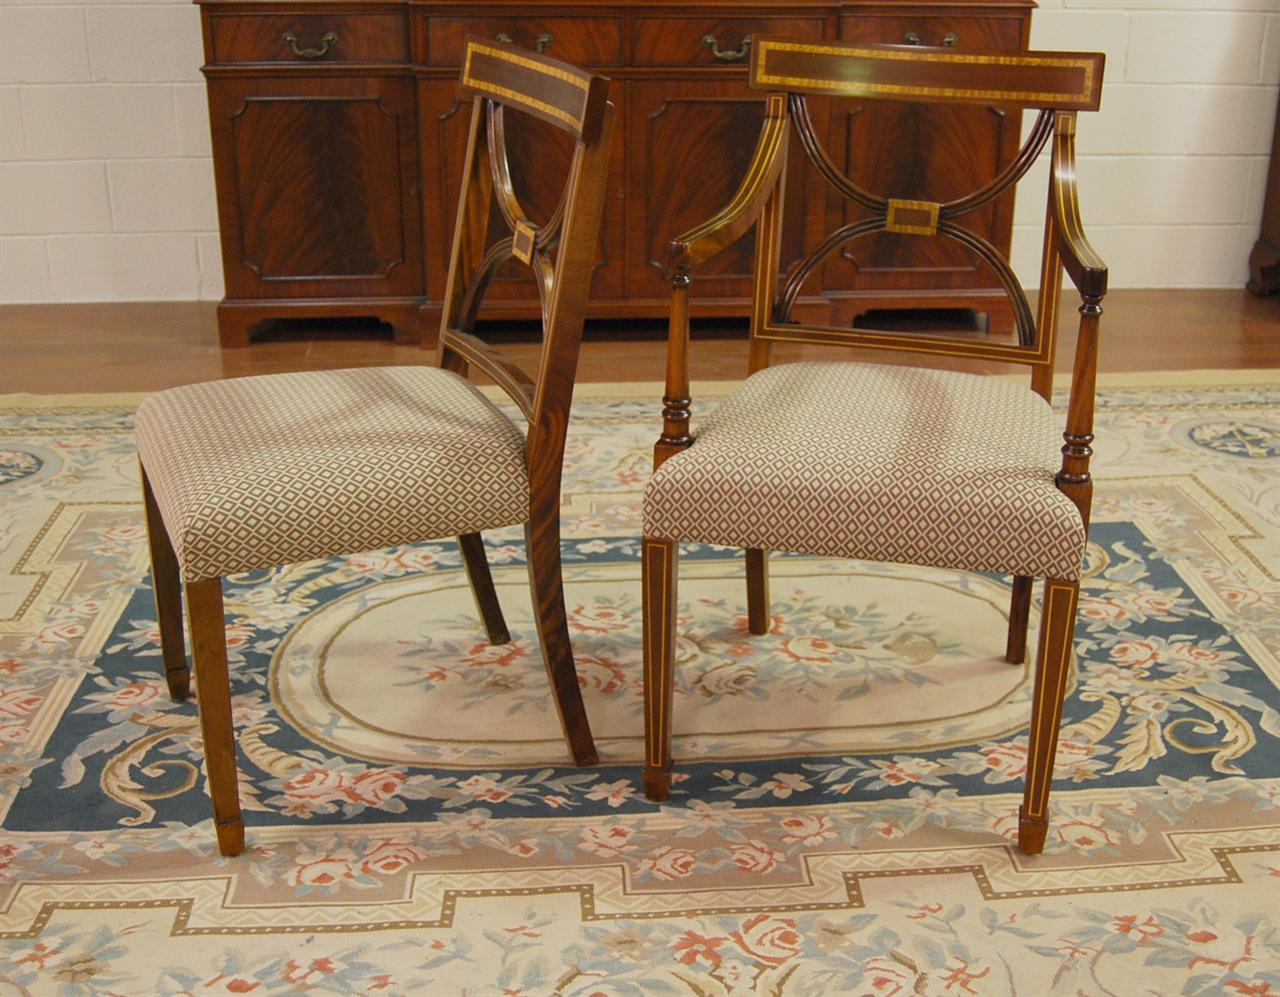 Mahogany Dining Chairs Cross Back Dining Room Chair Antique Purveyors  Online Store - Mahogany Dining Chairs Cross Back Dining Room Chair Antique